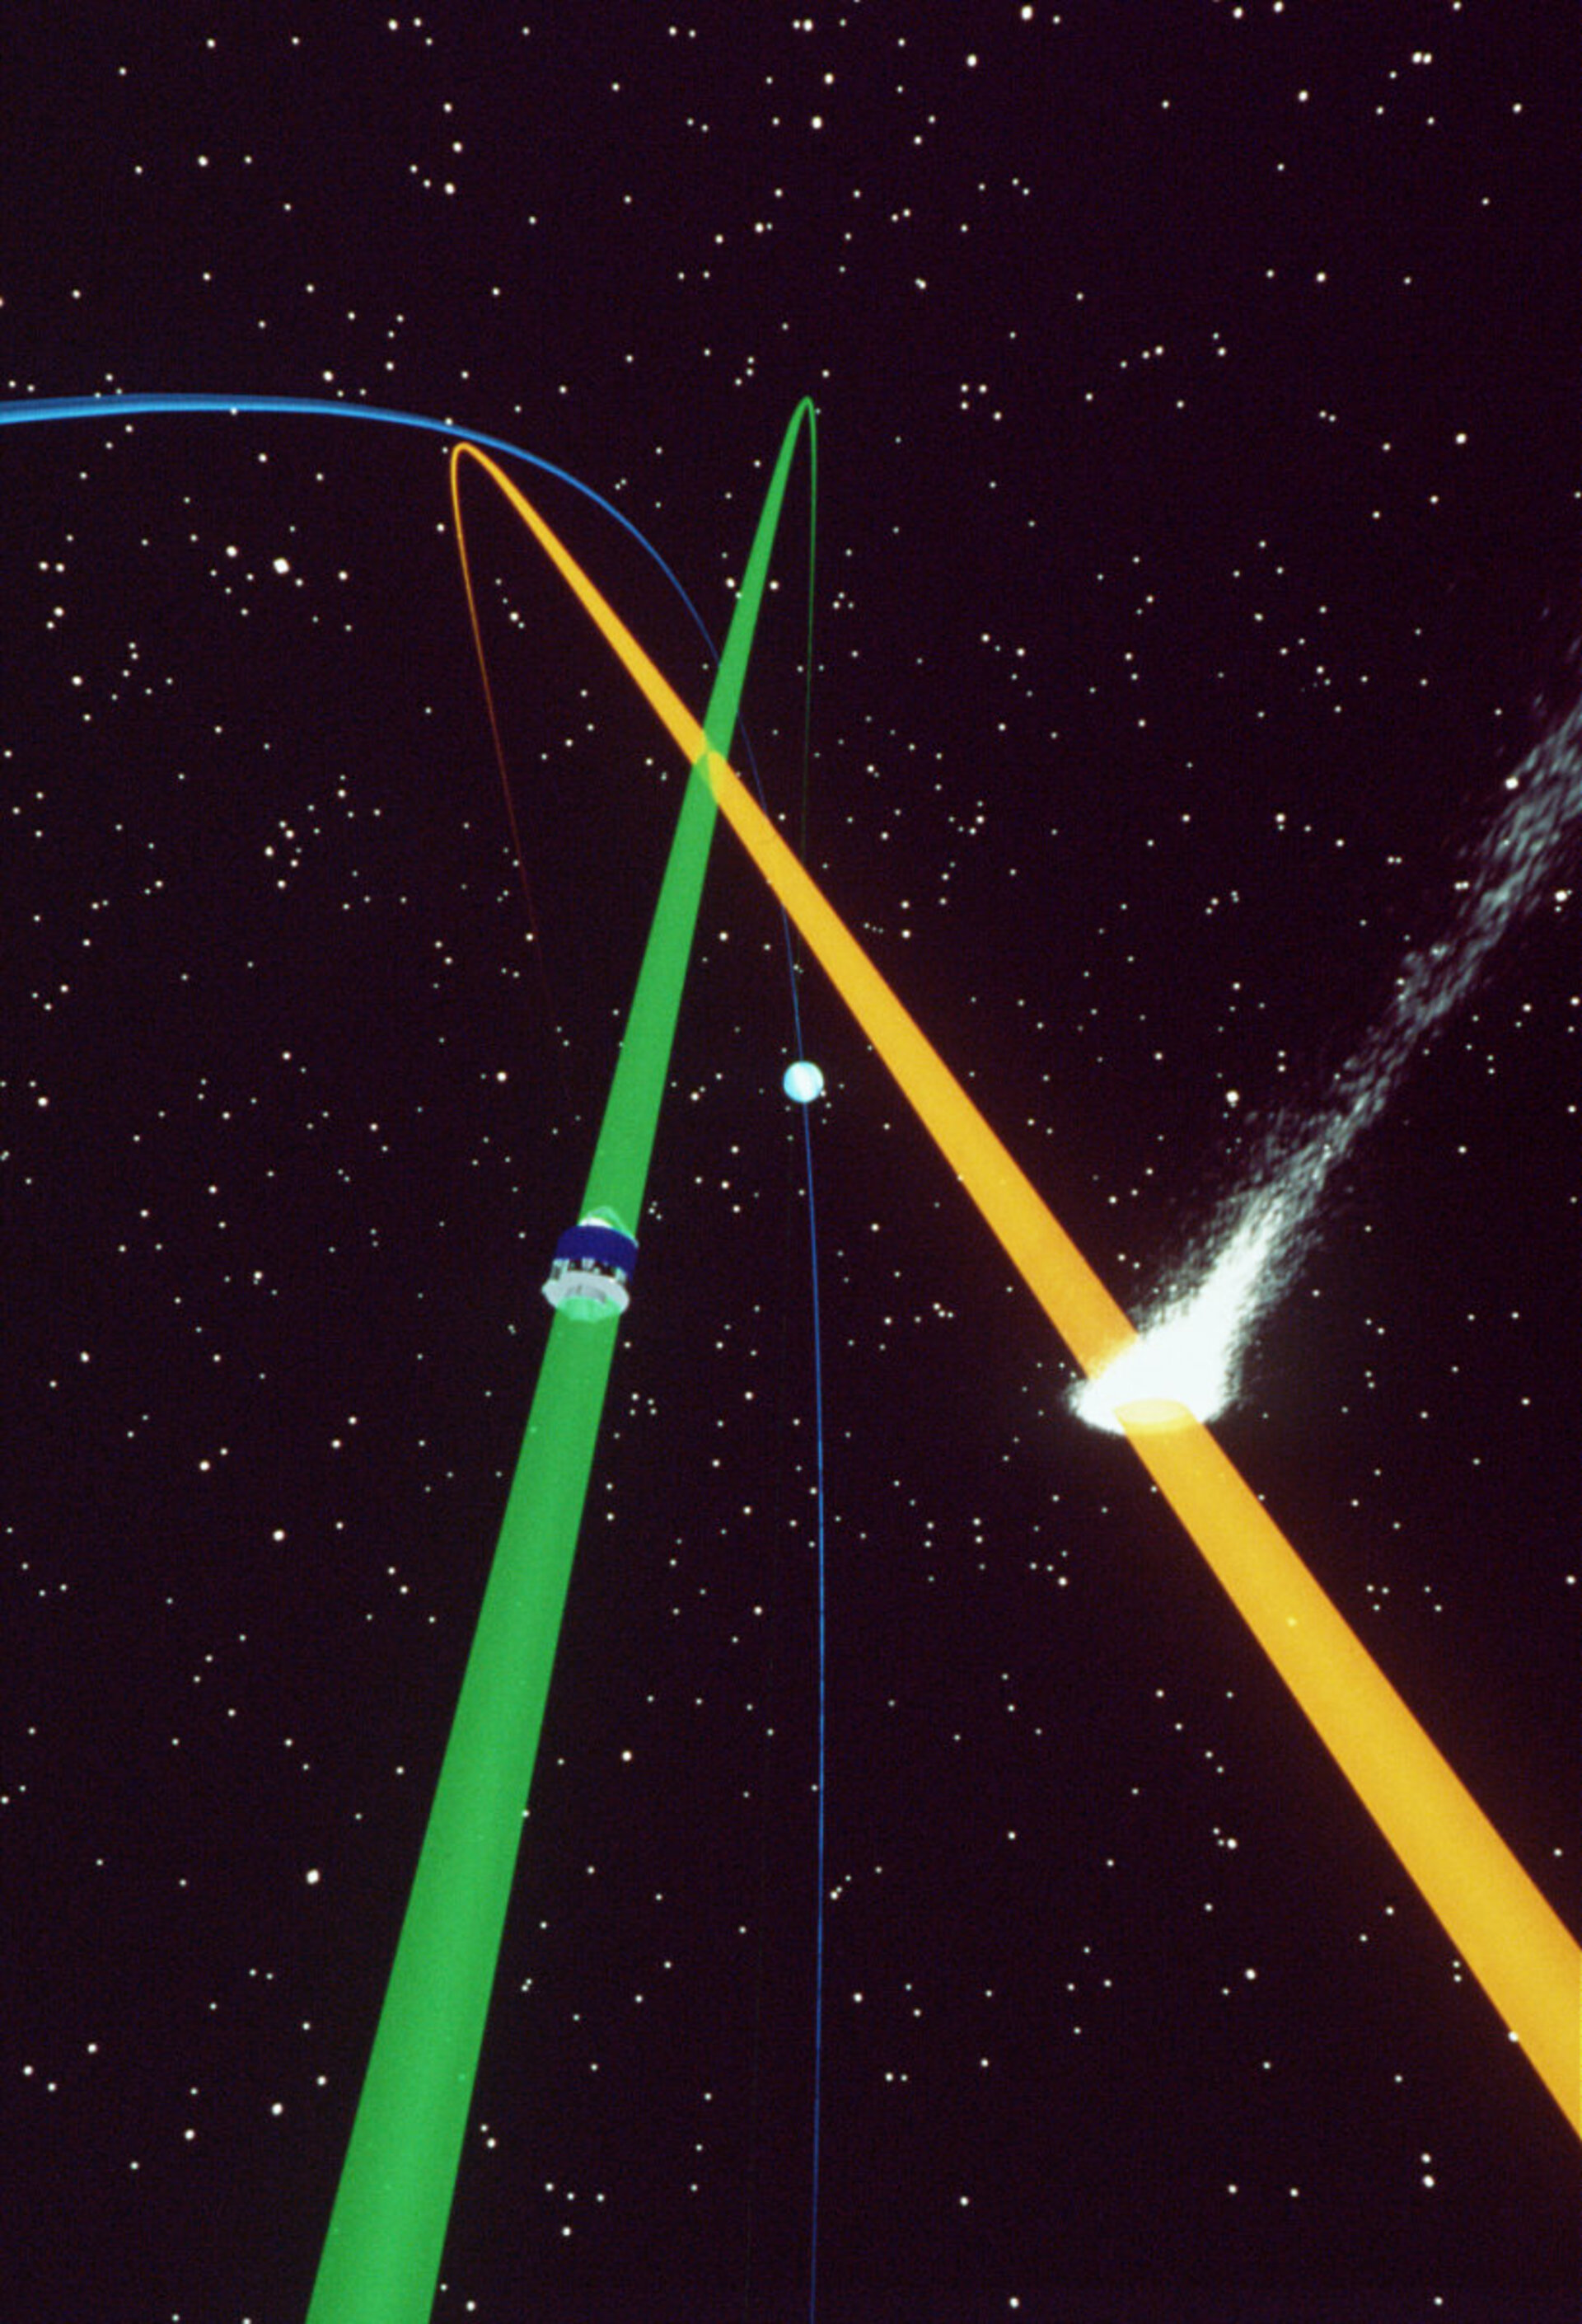 Giotto and Comet Grigg-Skjellerup approaching each other